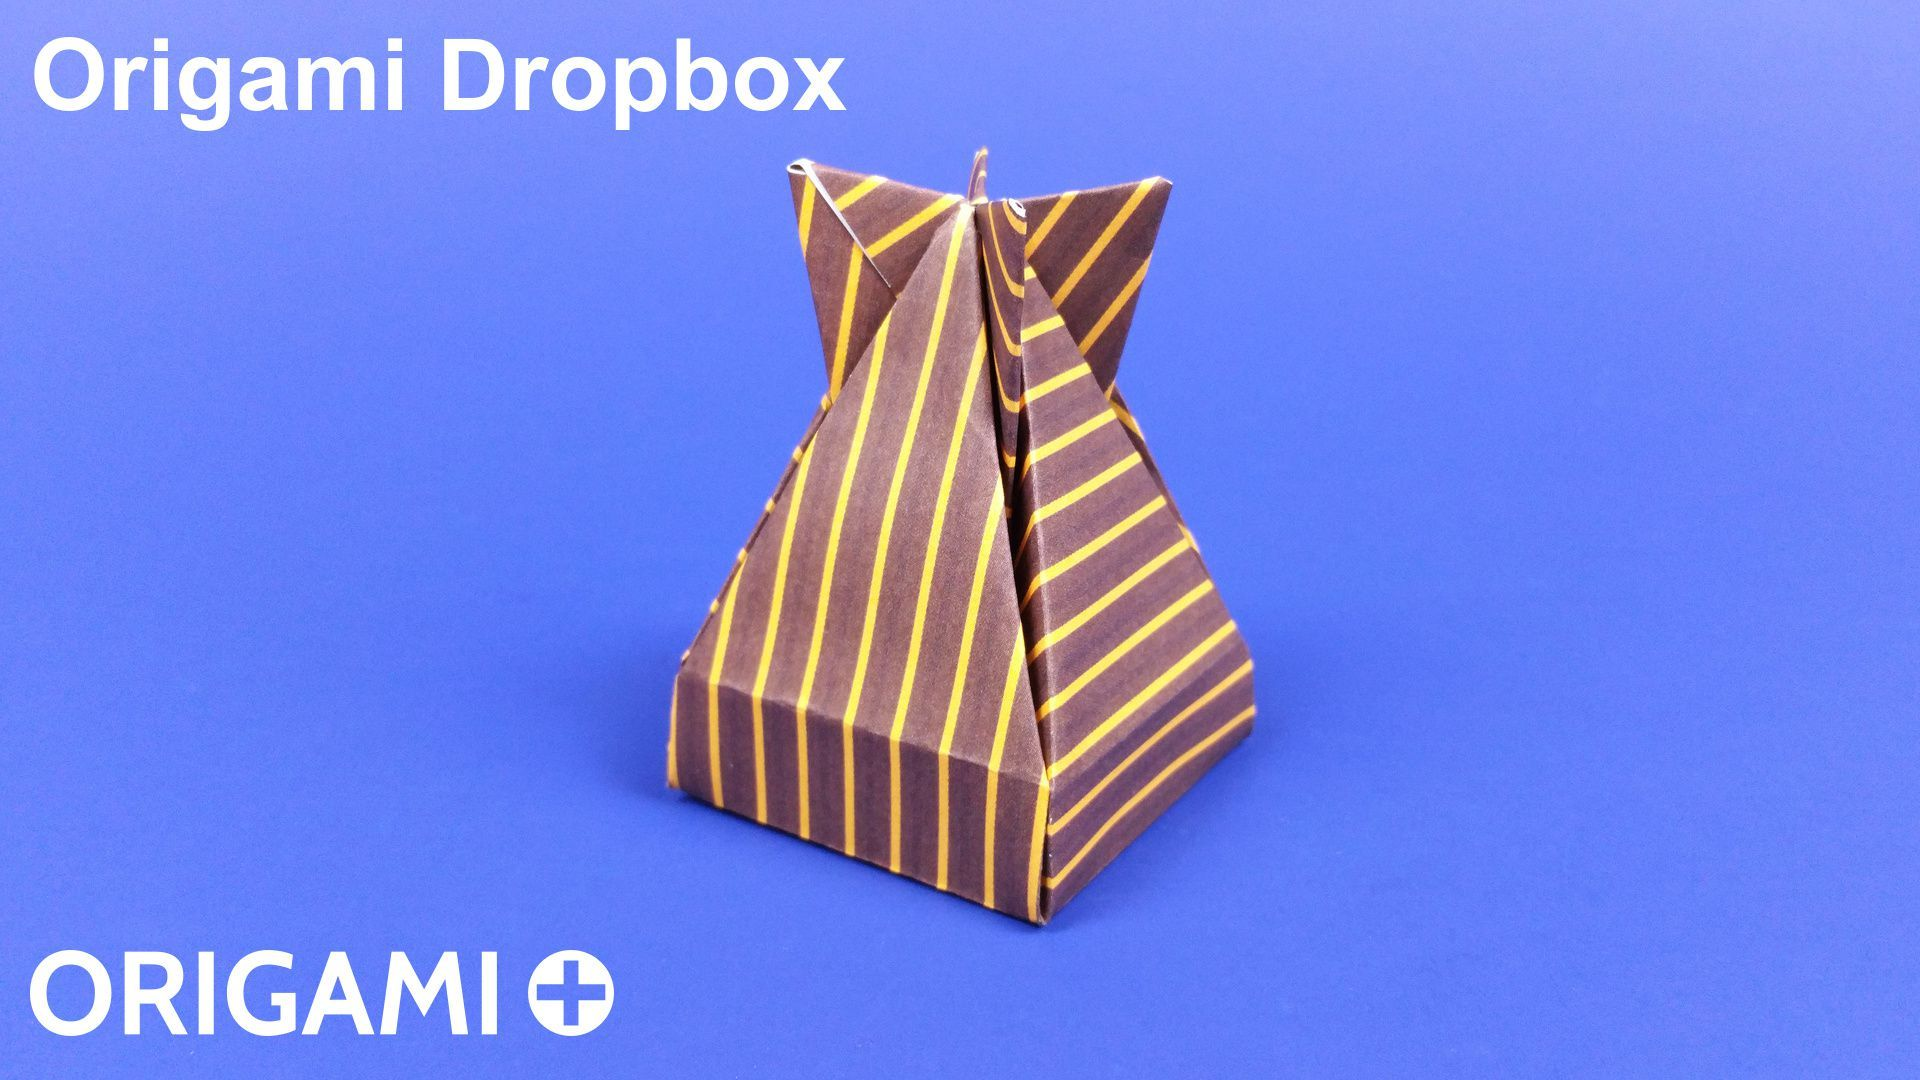 How To Make An Origami Dropbox A Cool Paper Gift Box Designed By Crane Diagram Jos Meeusen Step Instructions With Photos And